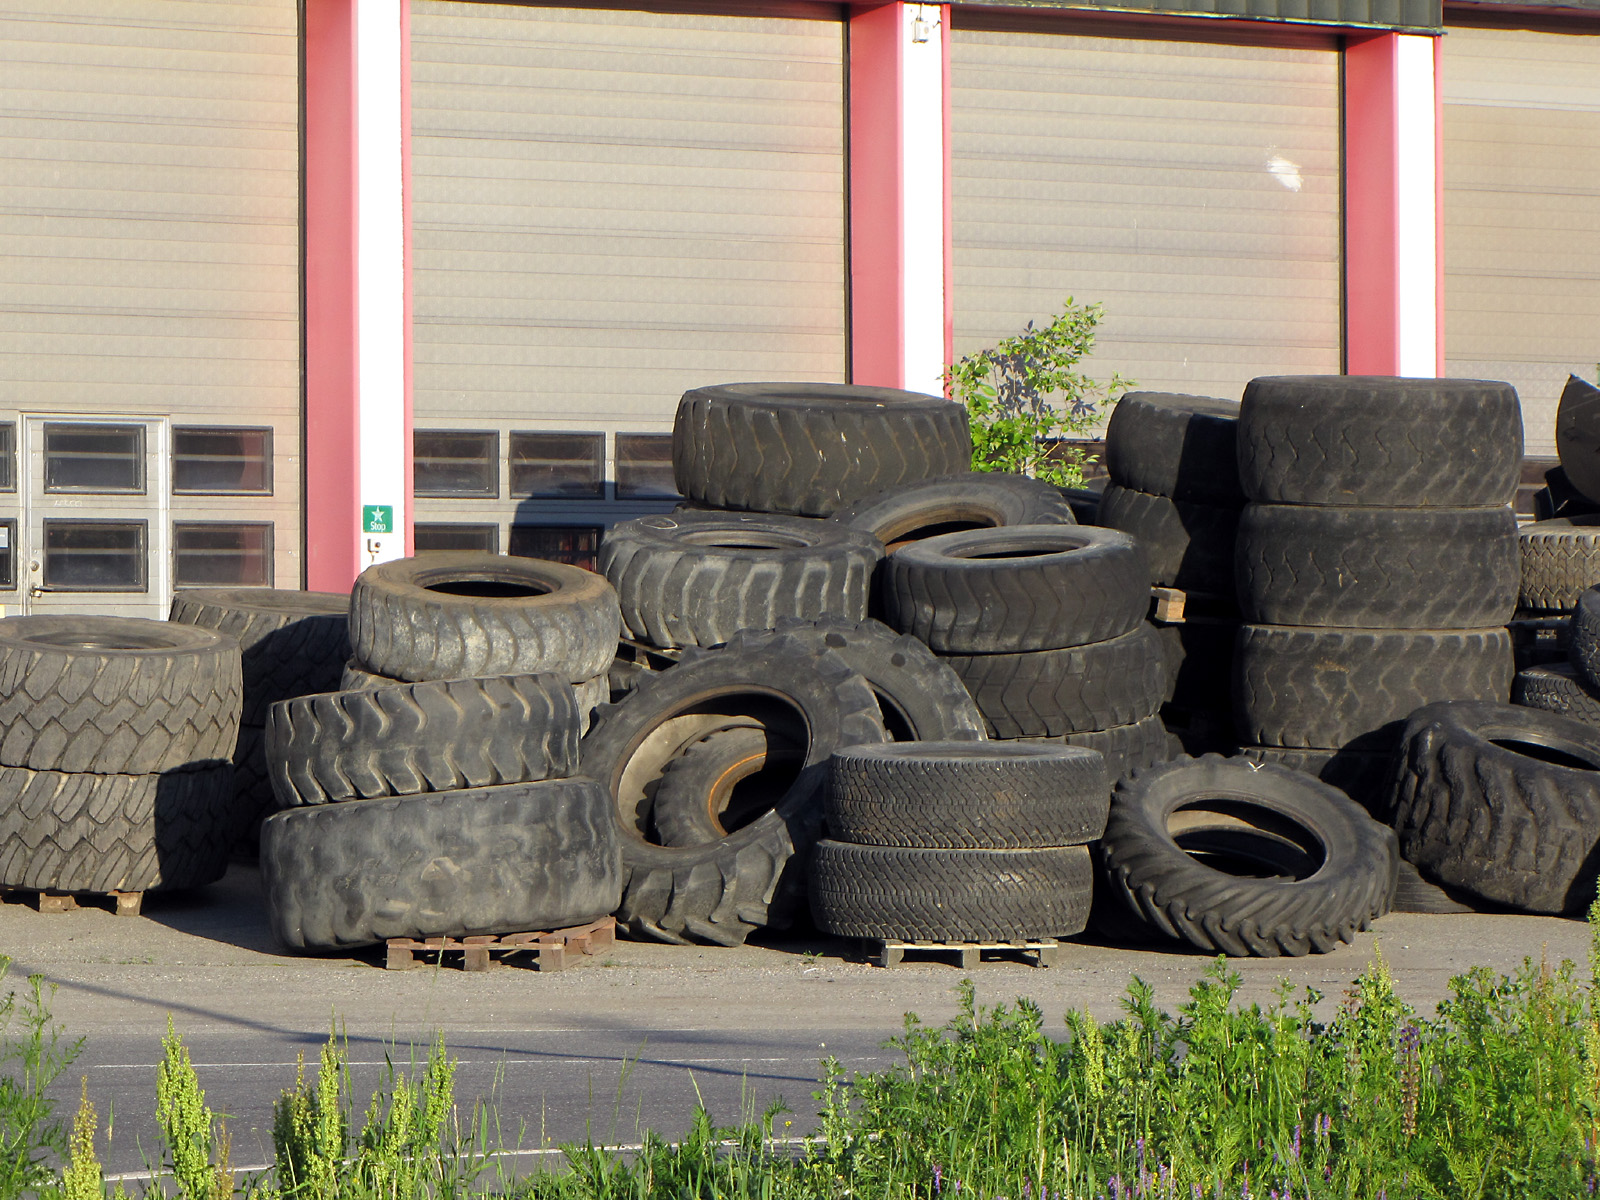 Bring your old tires in to help prevent zika treasure for What to do with old tires